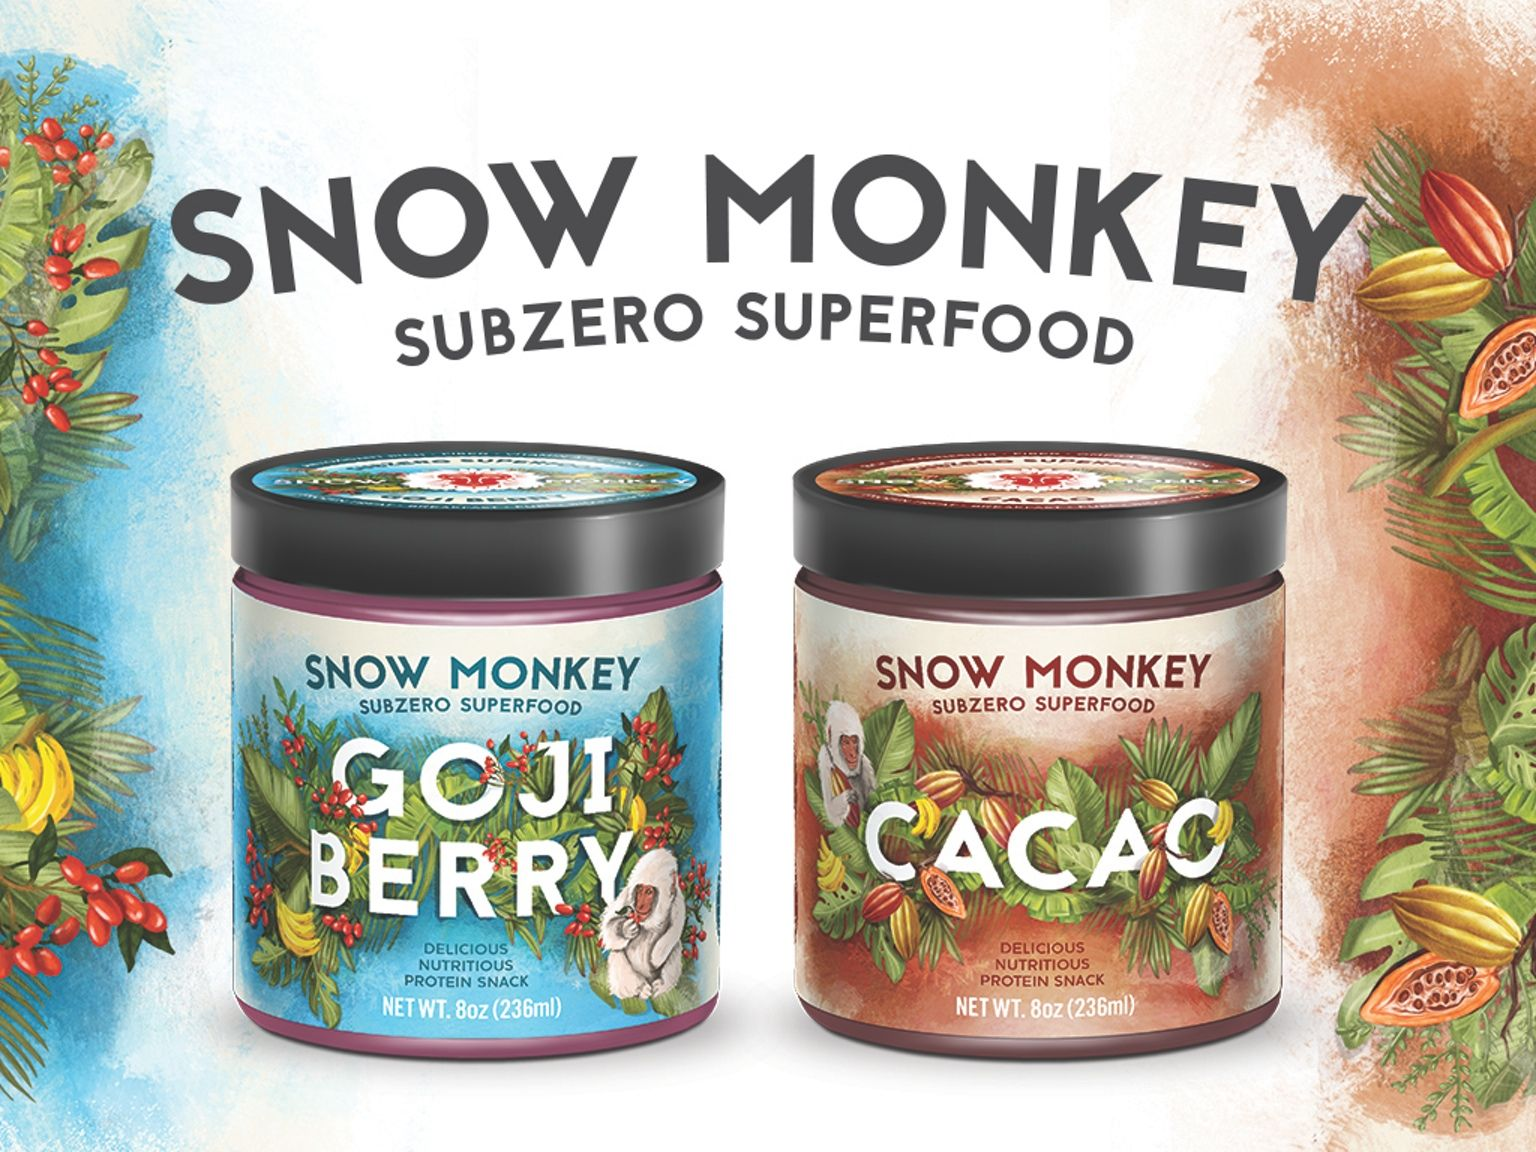 Subzero Superfood. Frozen blend of premium superfoods, fruits, and seeds. Think Ice Cream, but better • Vegan • Paleo • High Protein •